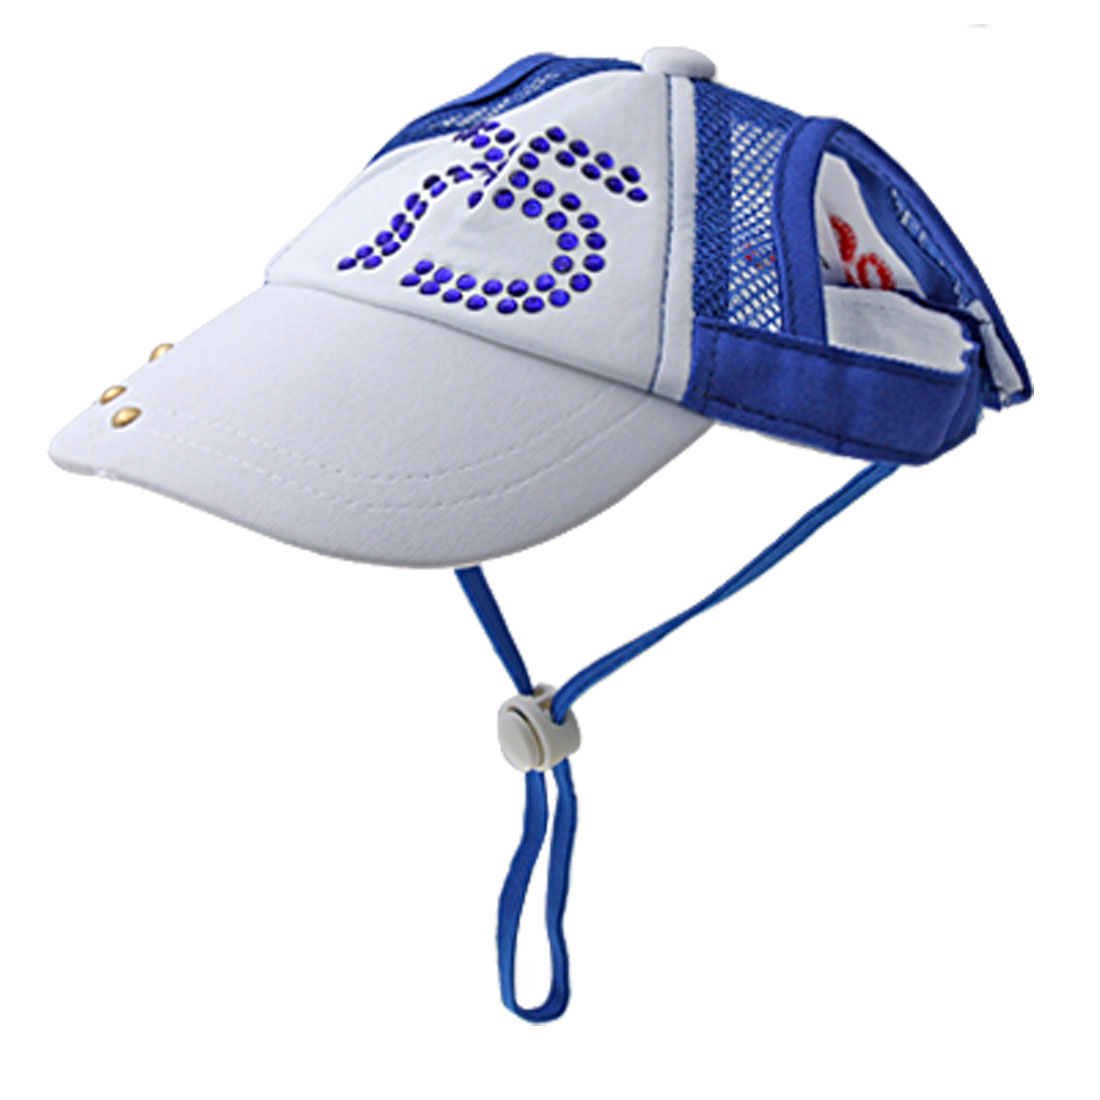 Sports Size M Crystal Decor Cap for Puppy Blue White